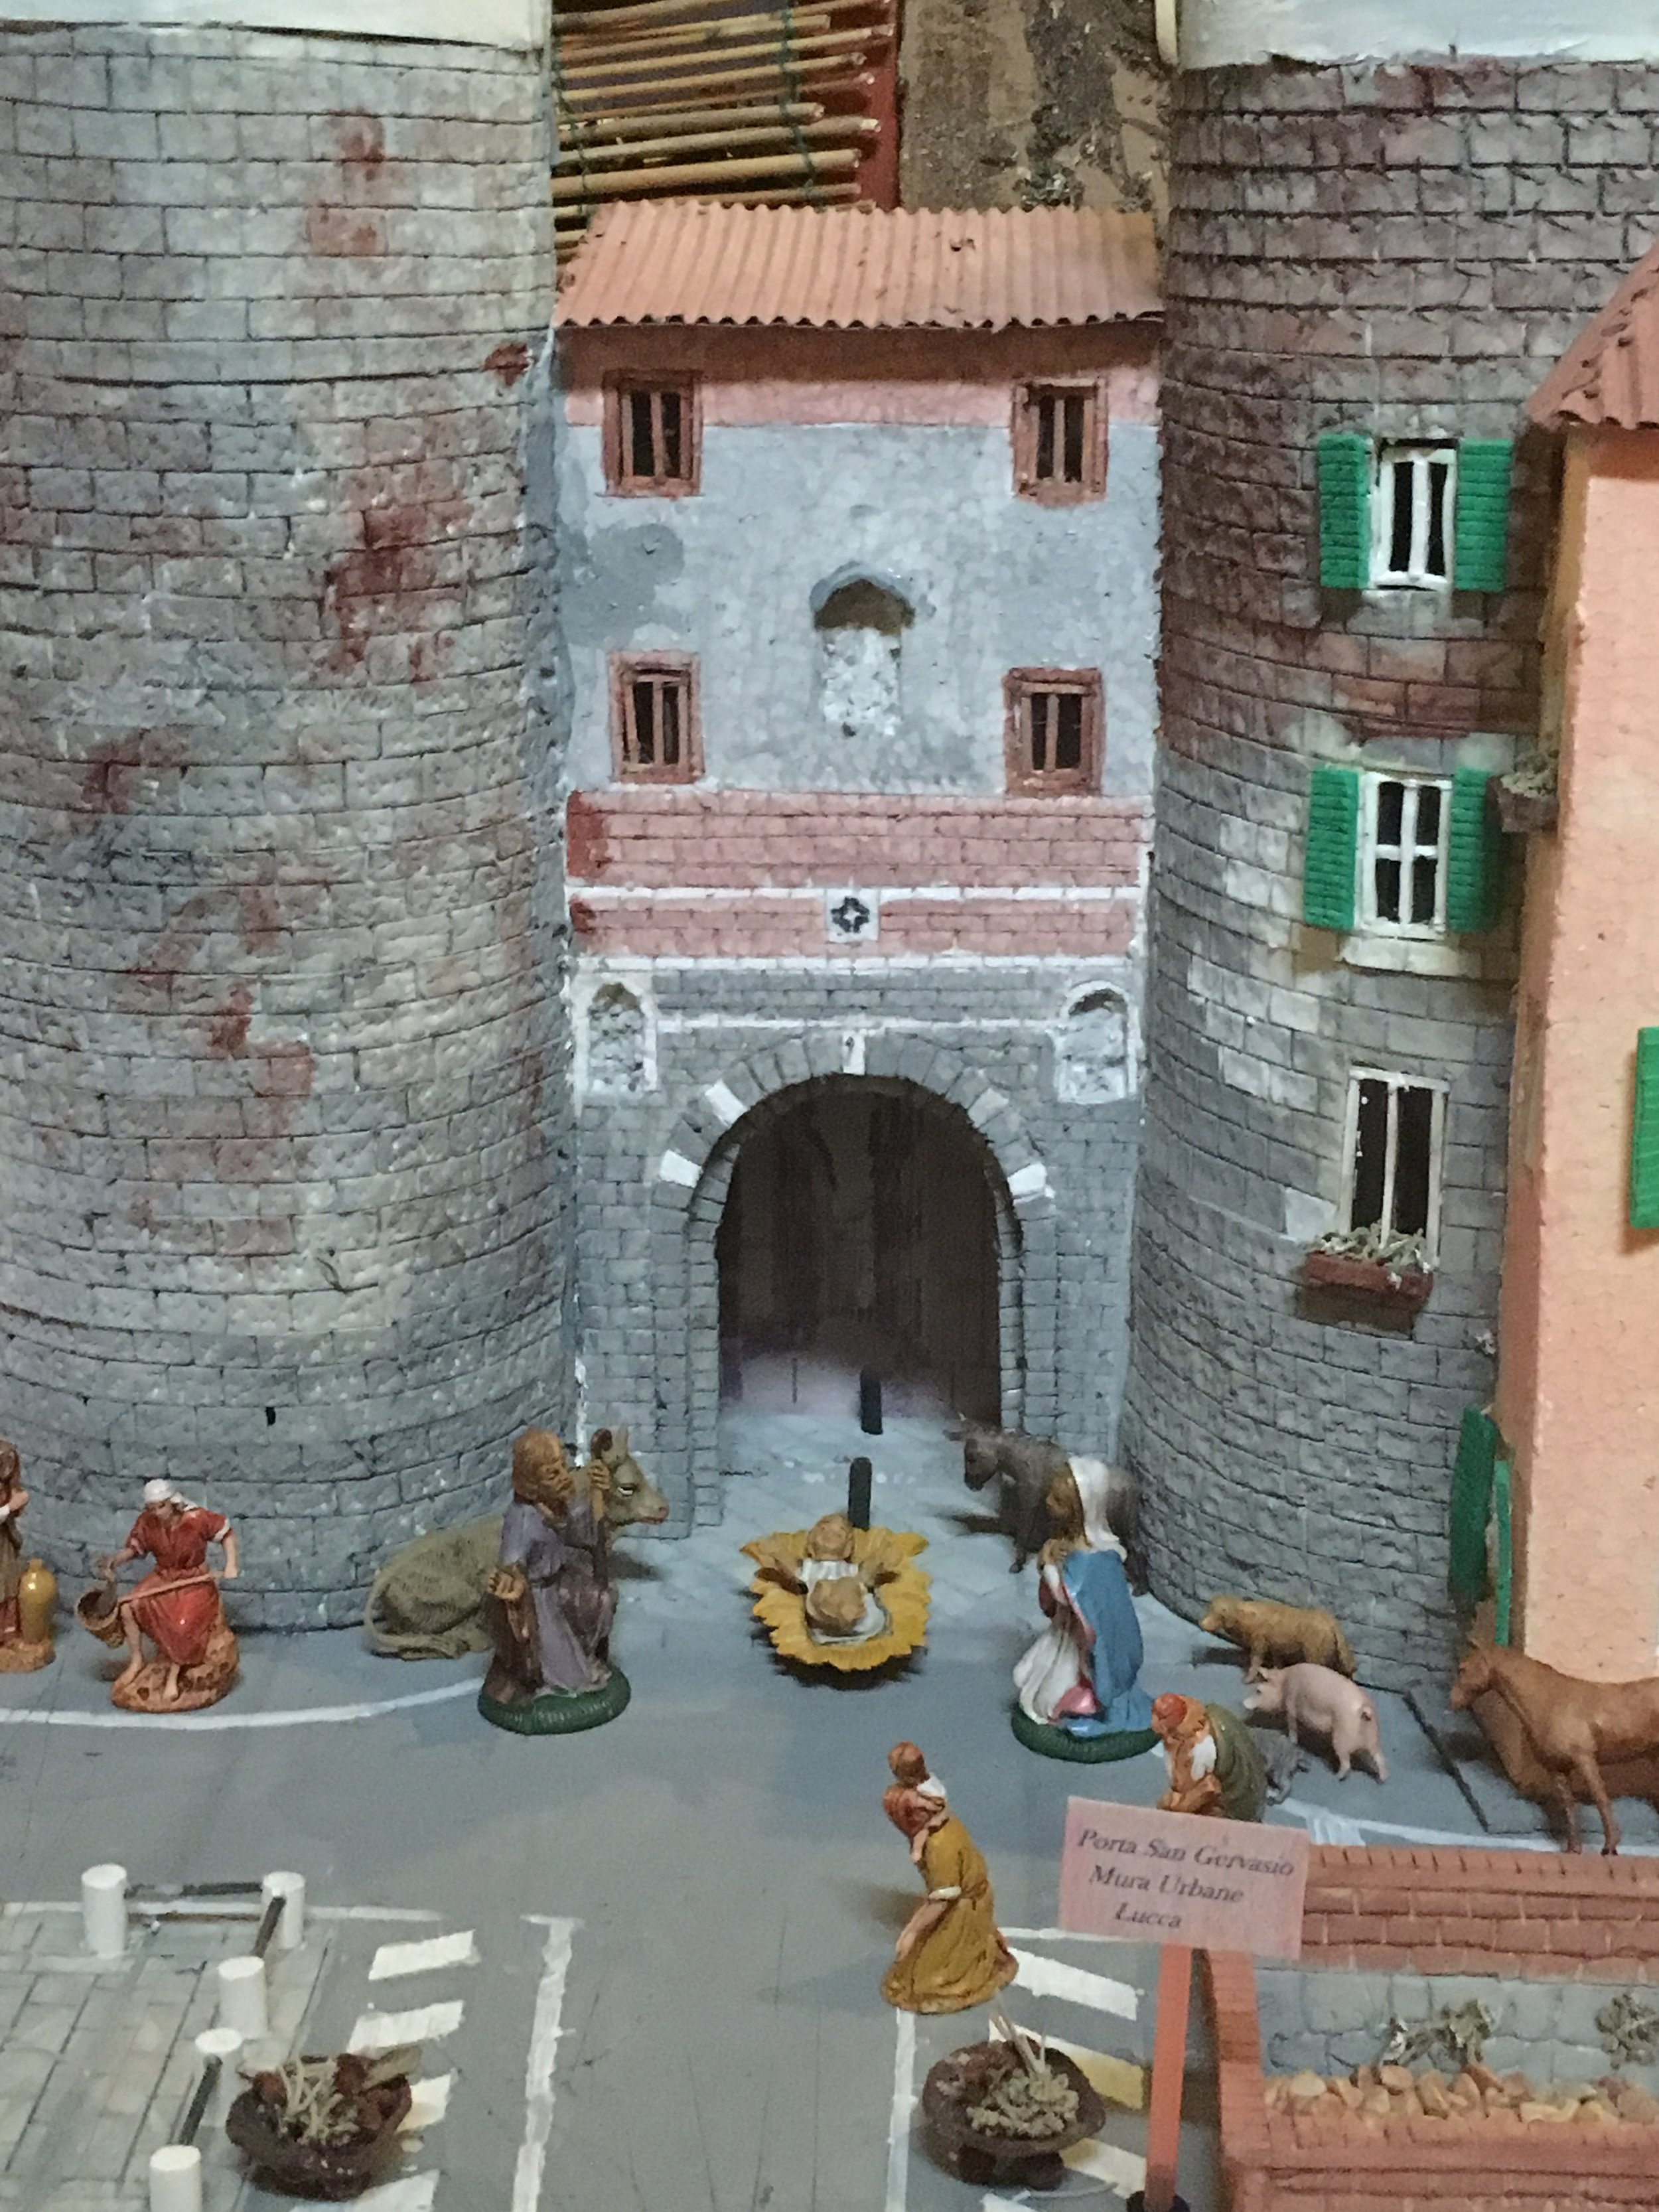 This presepe places the Nativity at one of Lucca's medieval gates.